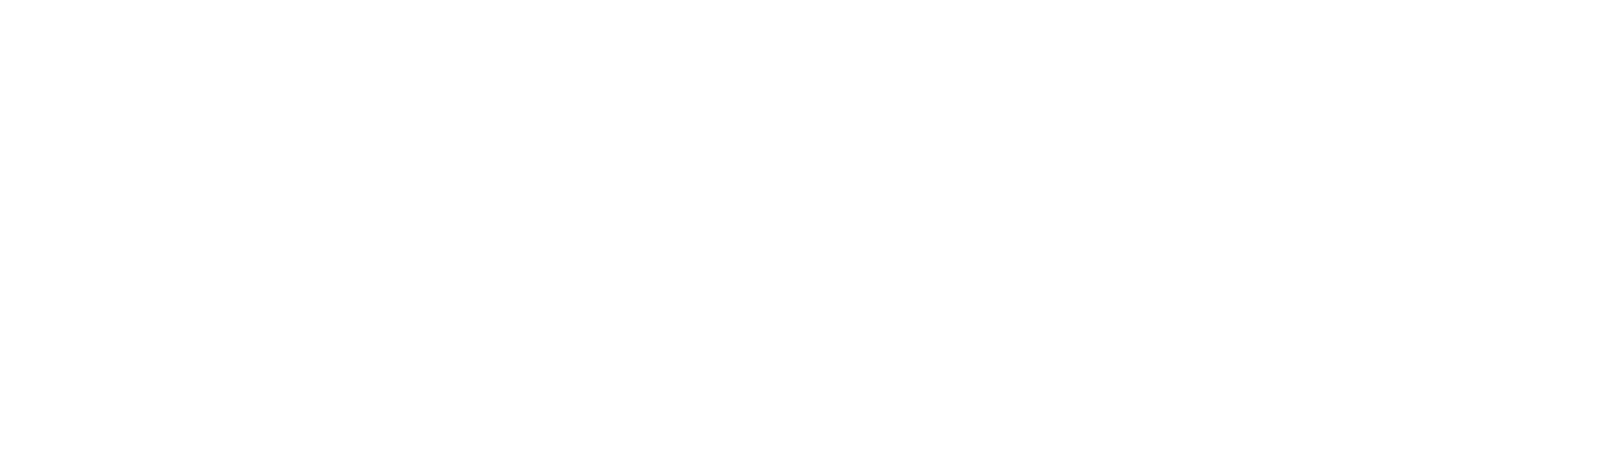 Peter Burton Music